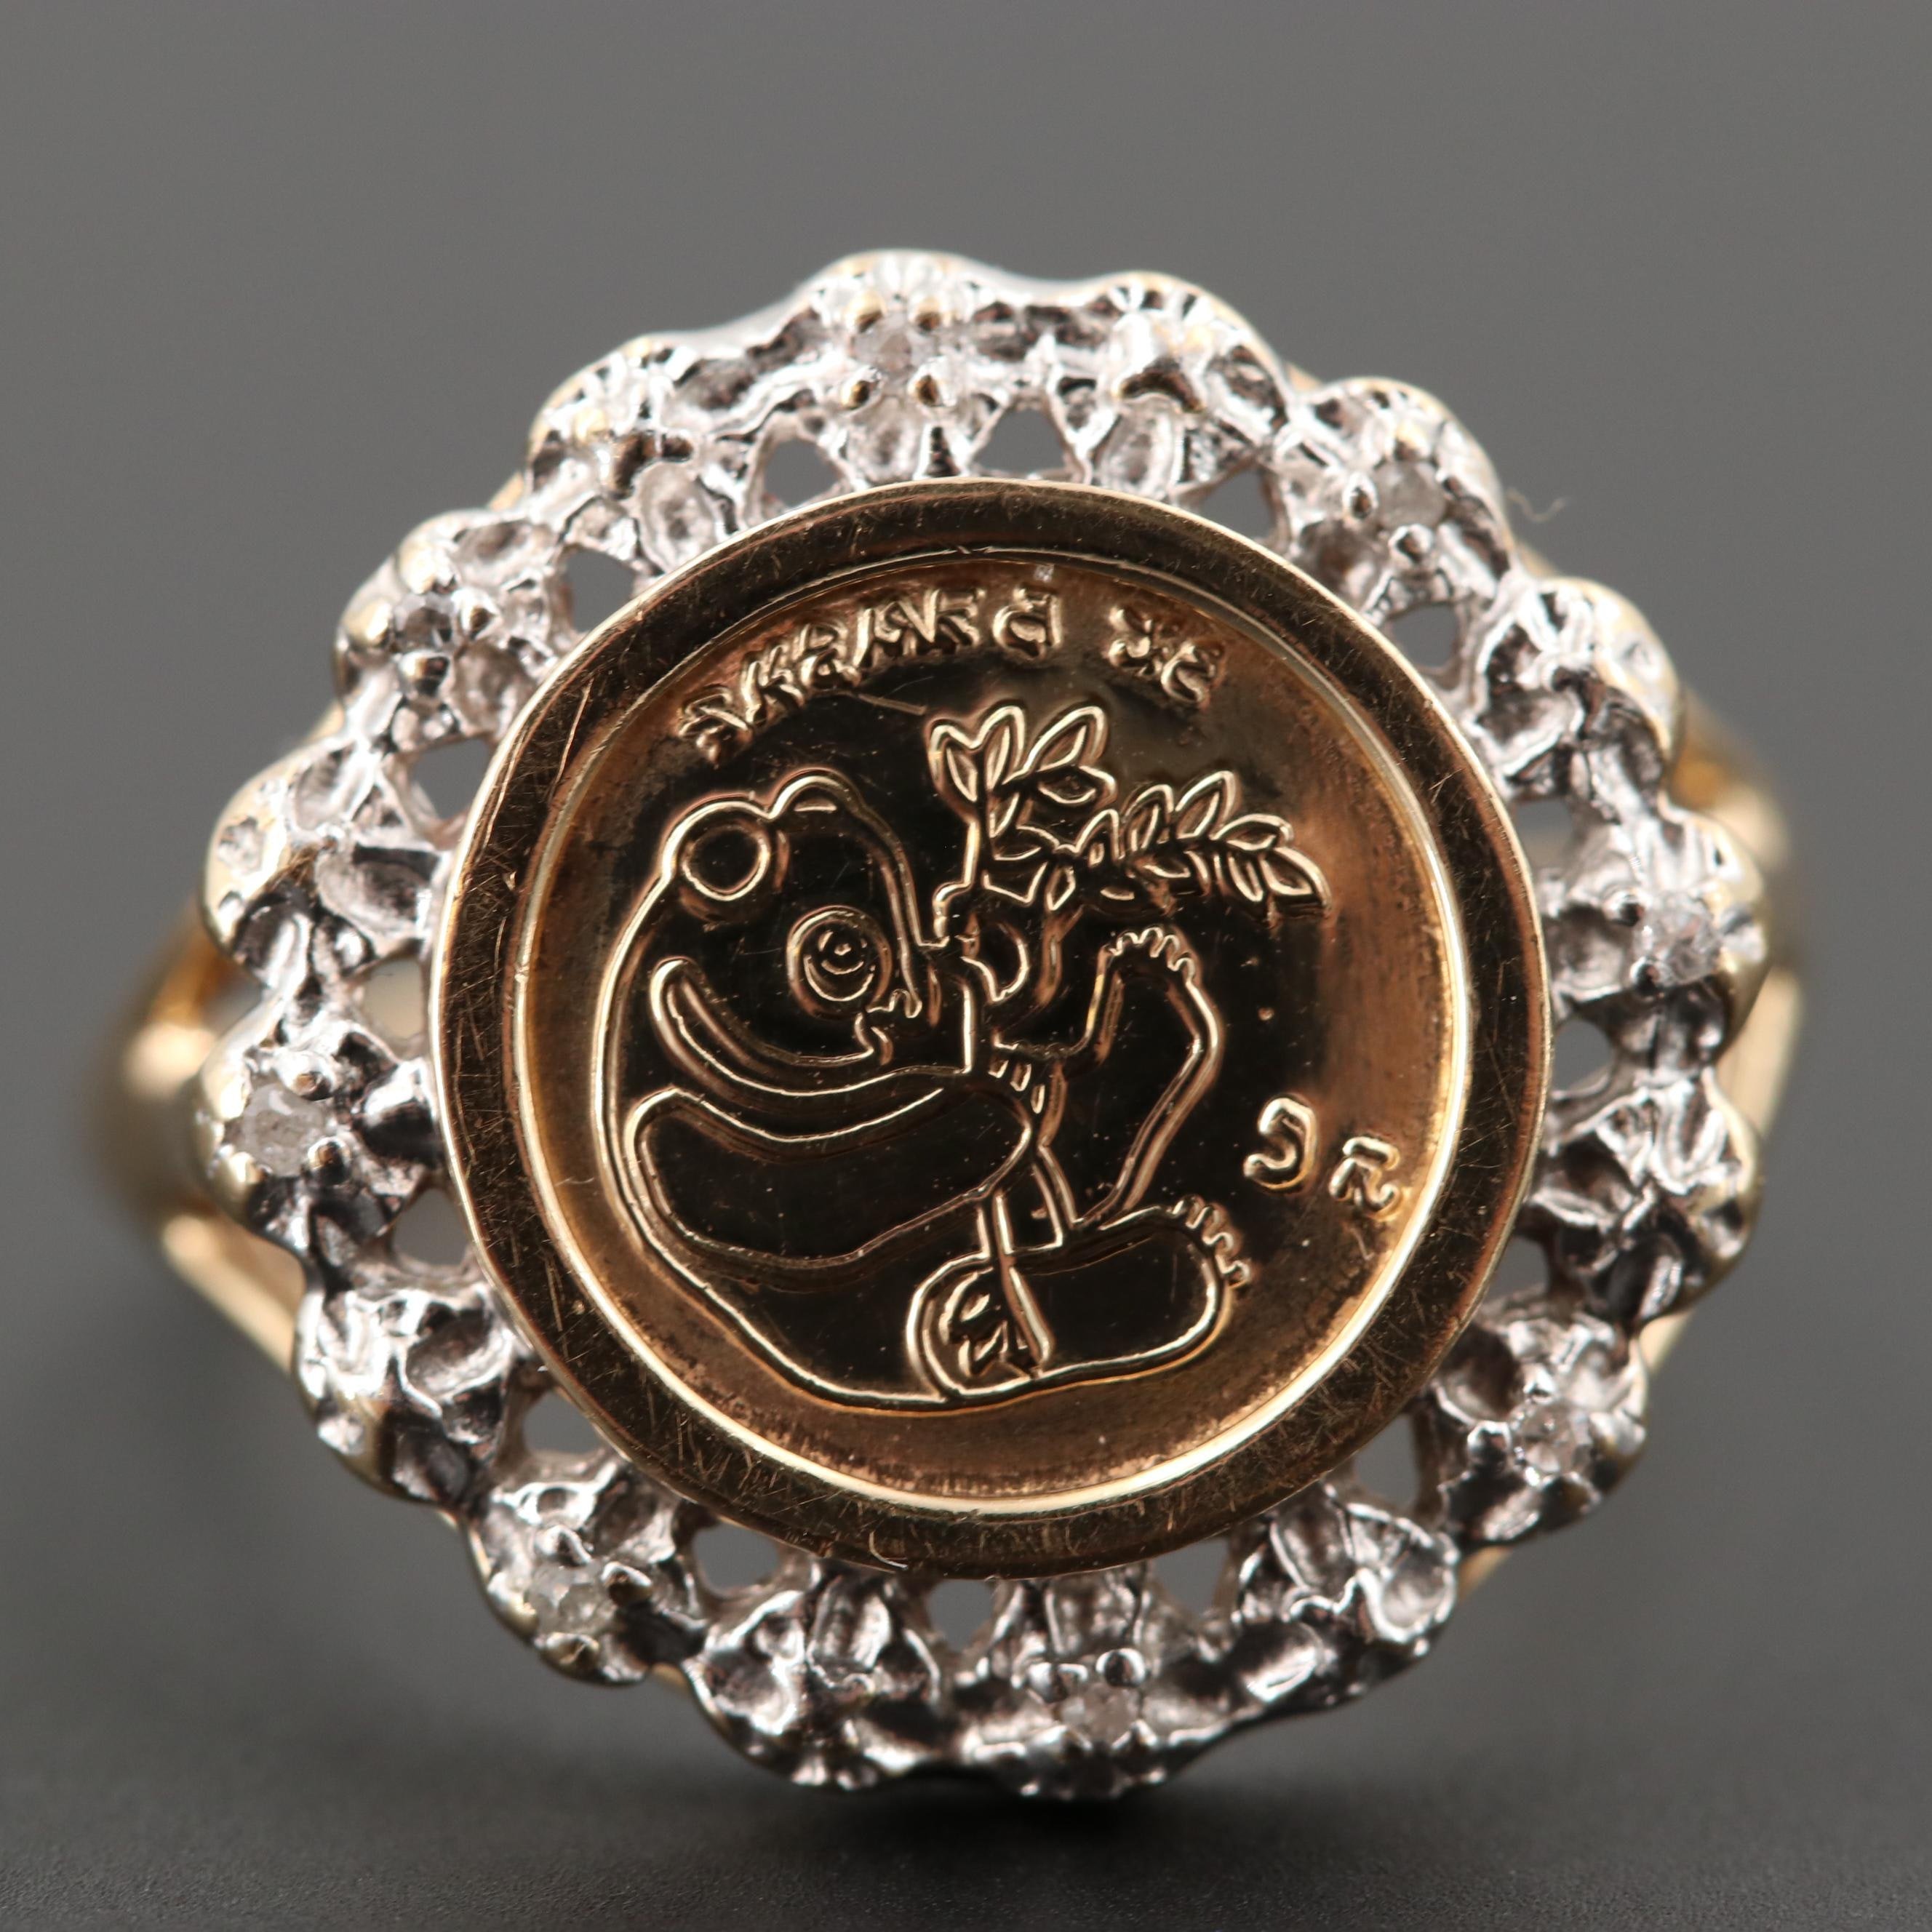 10K Yellow Gold Diamond Coin Replica Ring with White Gold Accents